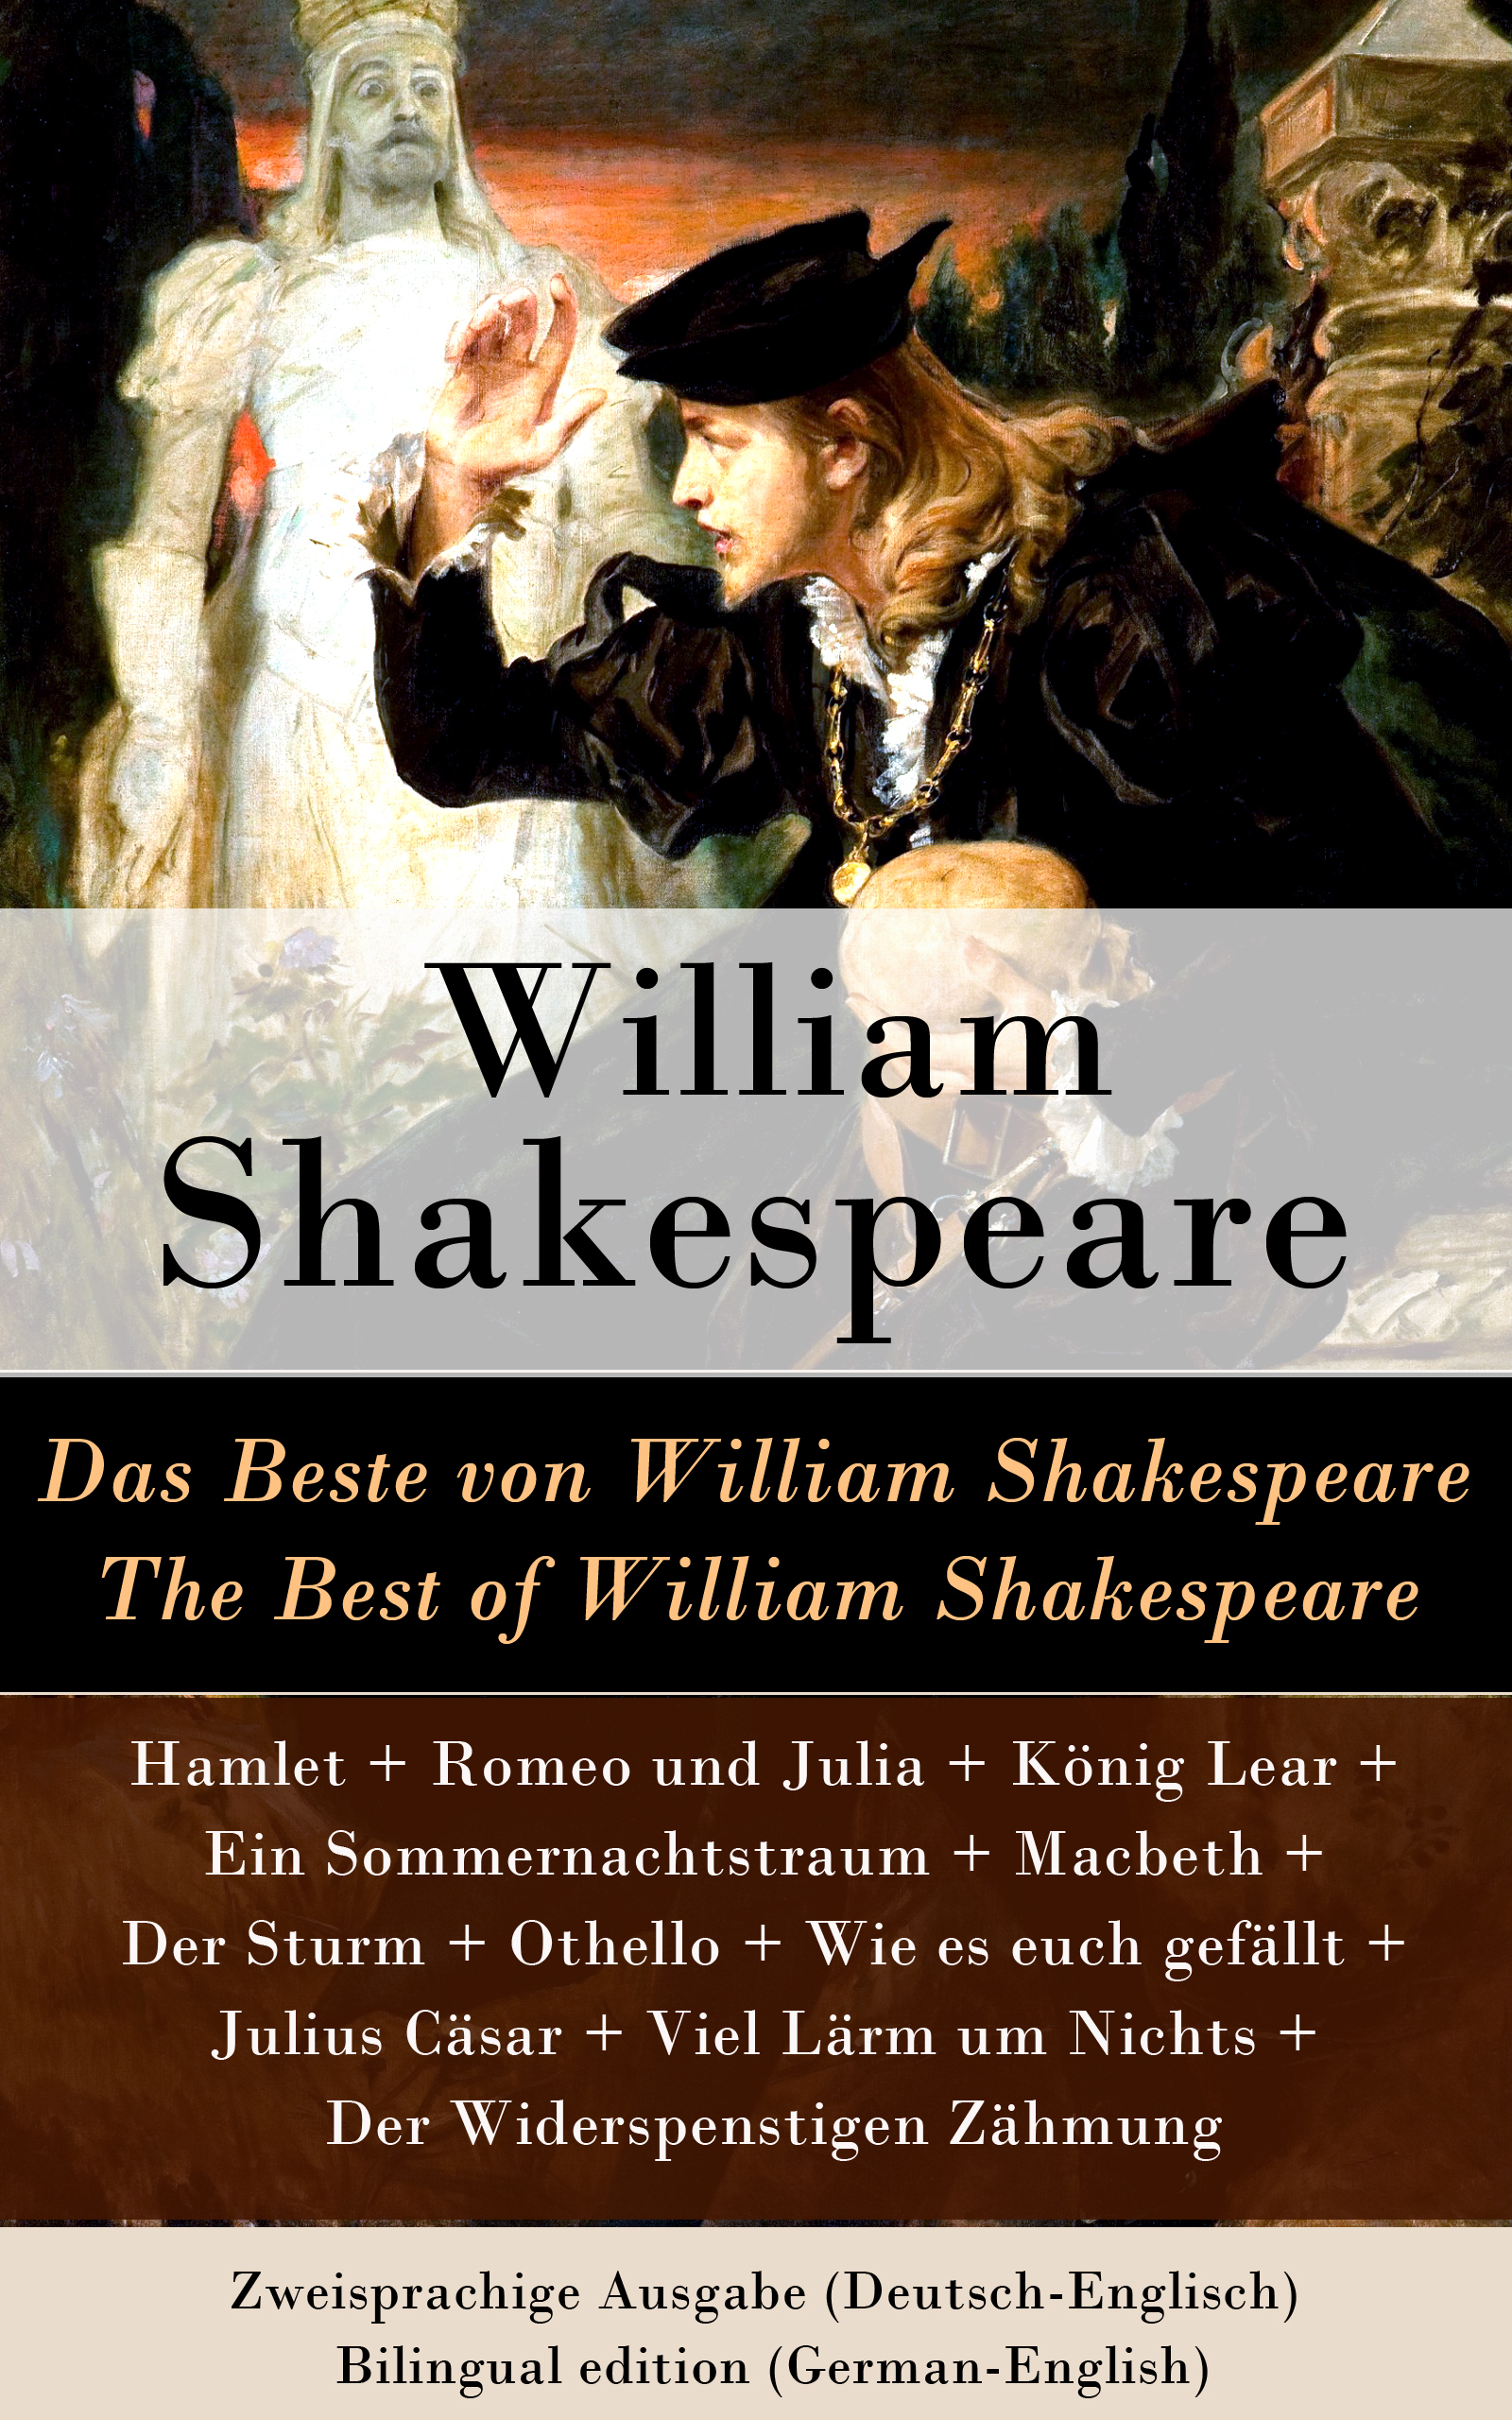 das beste von william shakespeare the best of william shakespeare zweisprachige ausgabe deutsch englisch bilingual edition german english